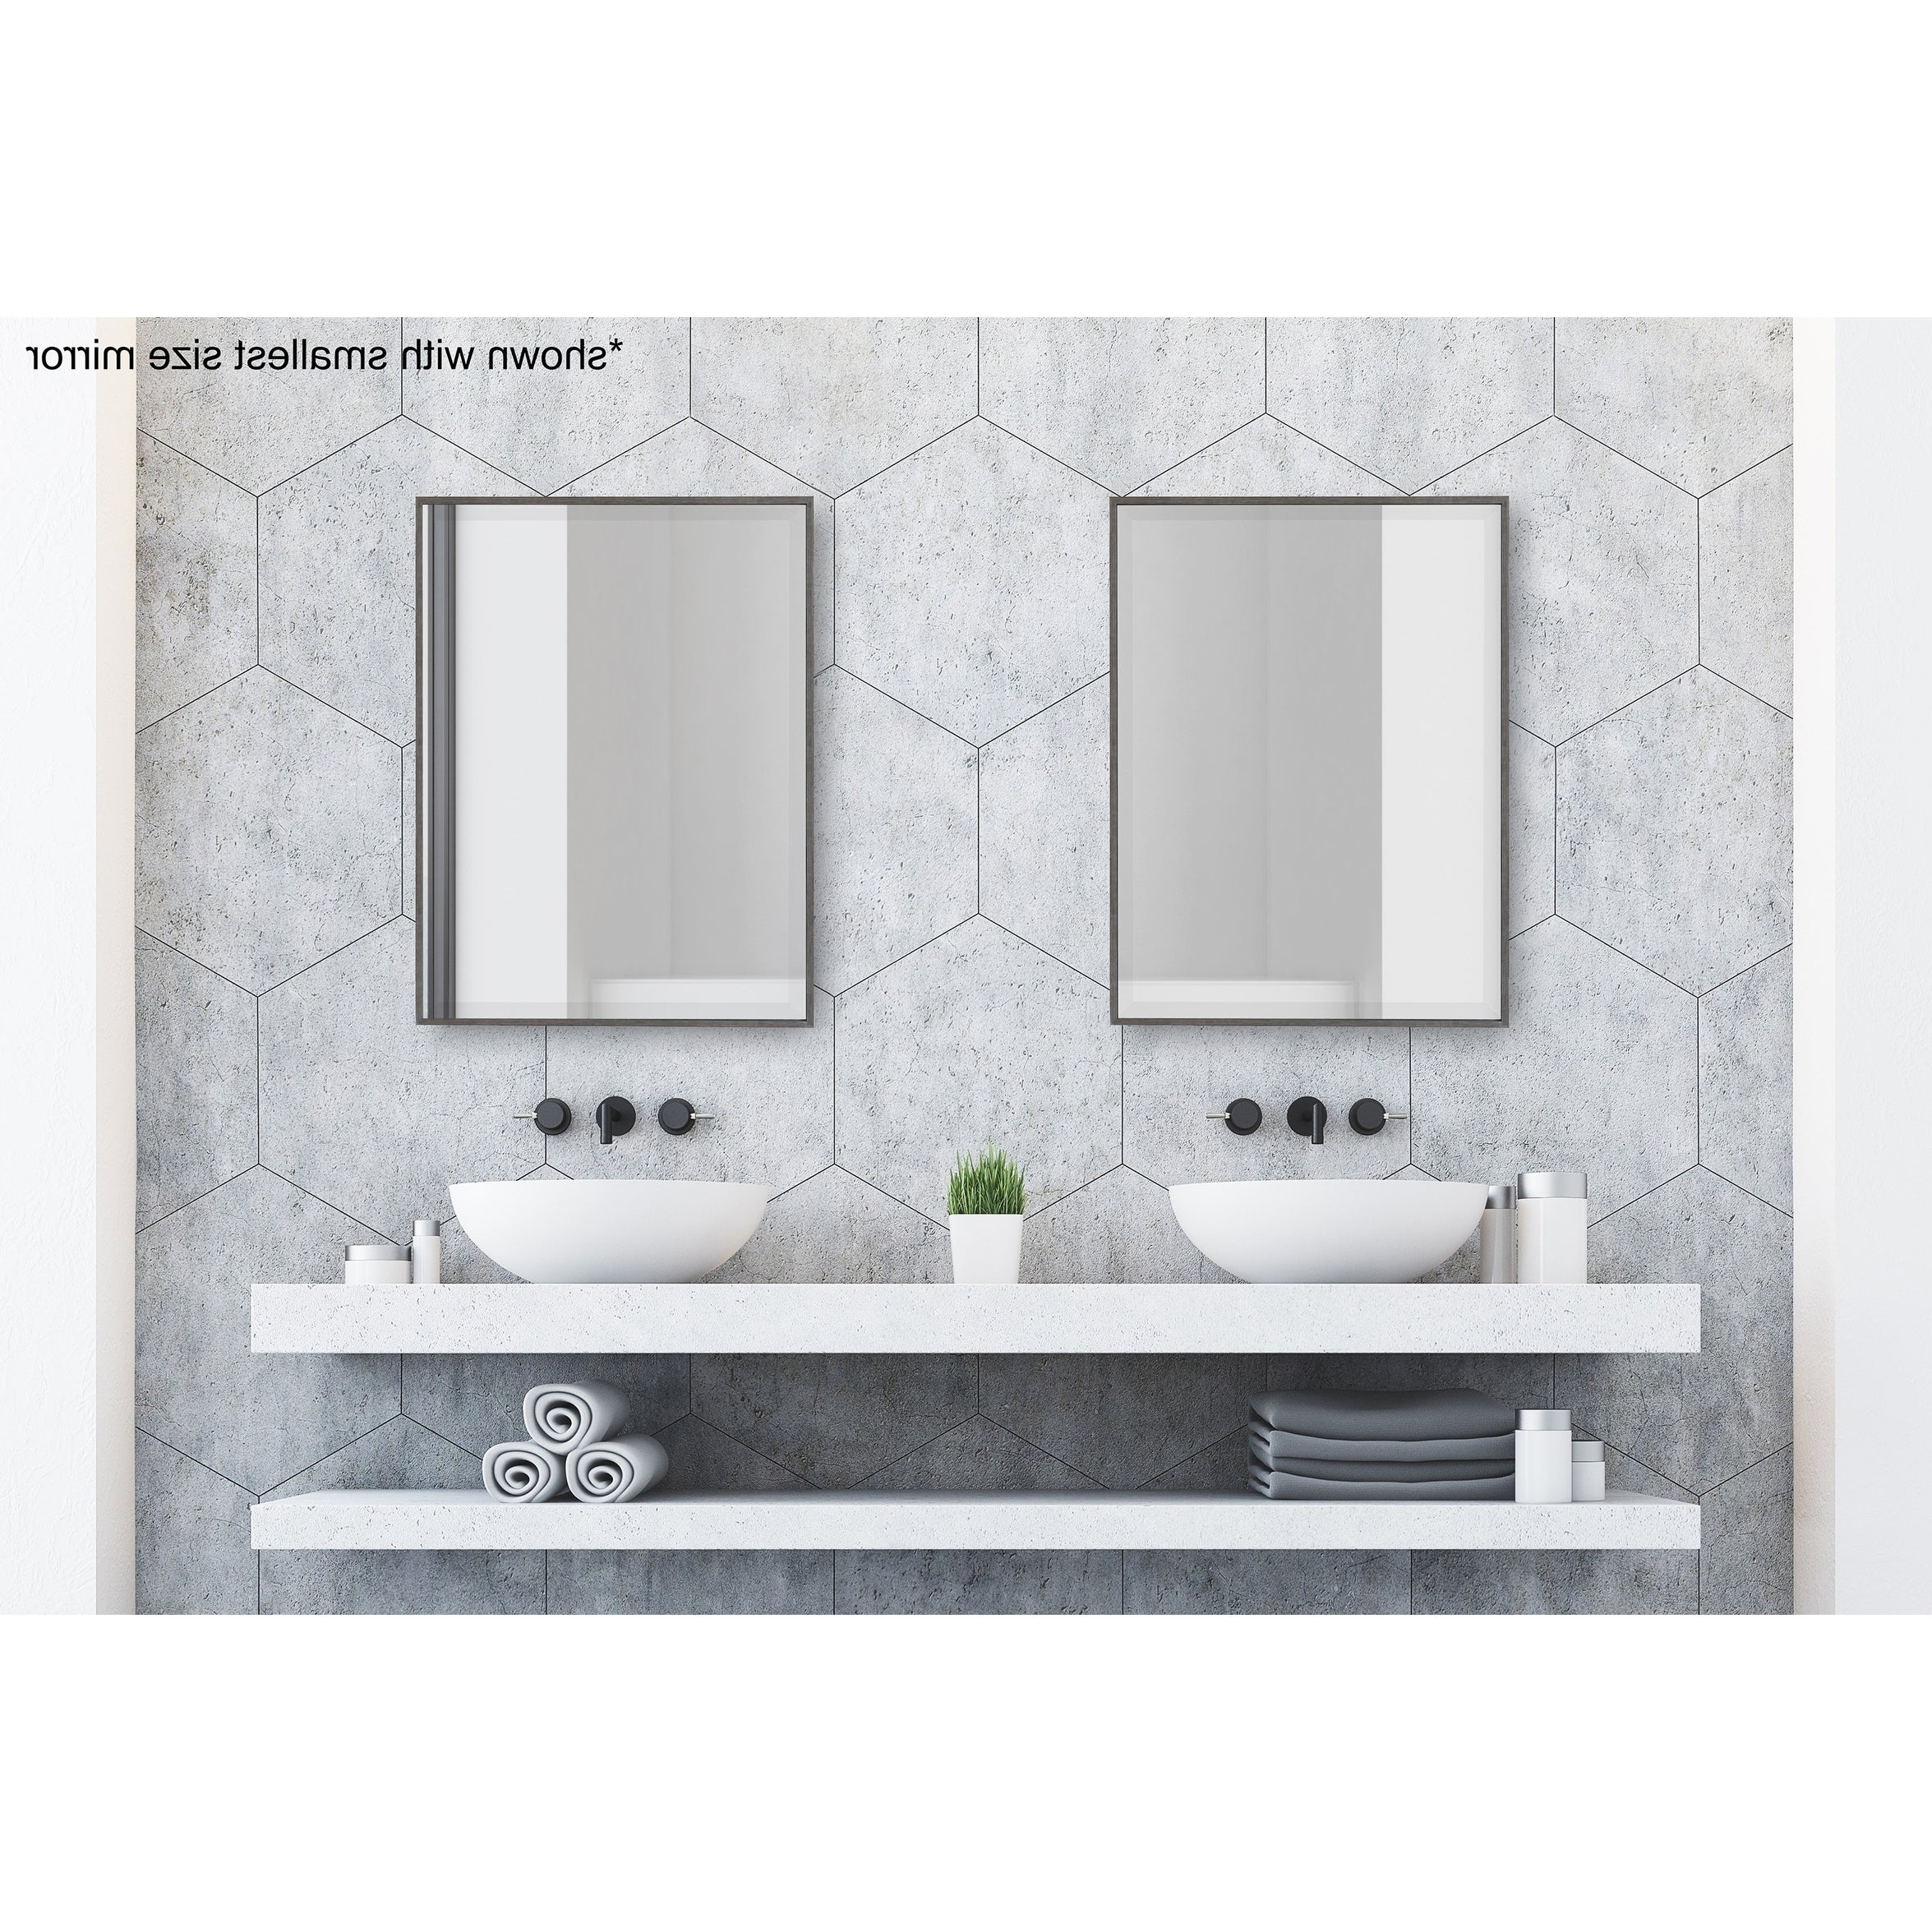 Shop Online At Overstock Intended For Oversized Wall Mirrors (View 16 of 20)